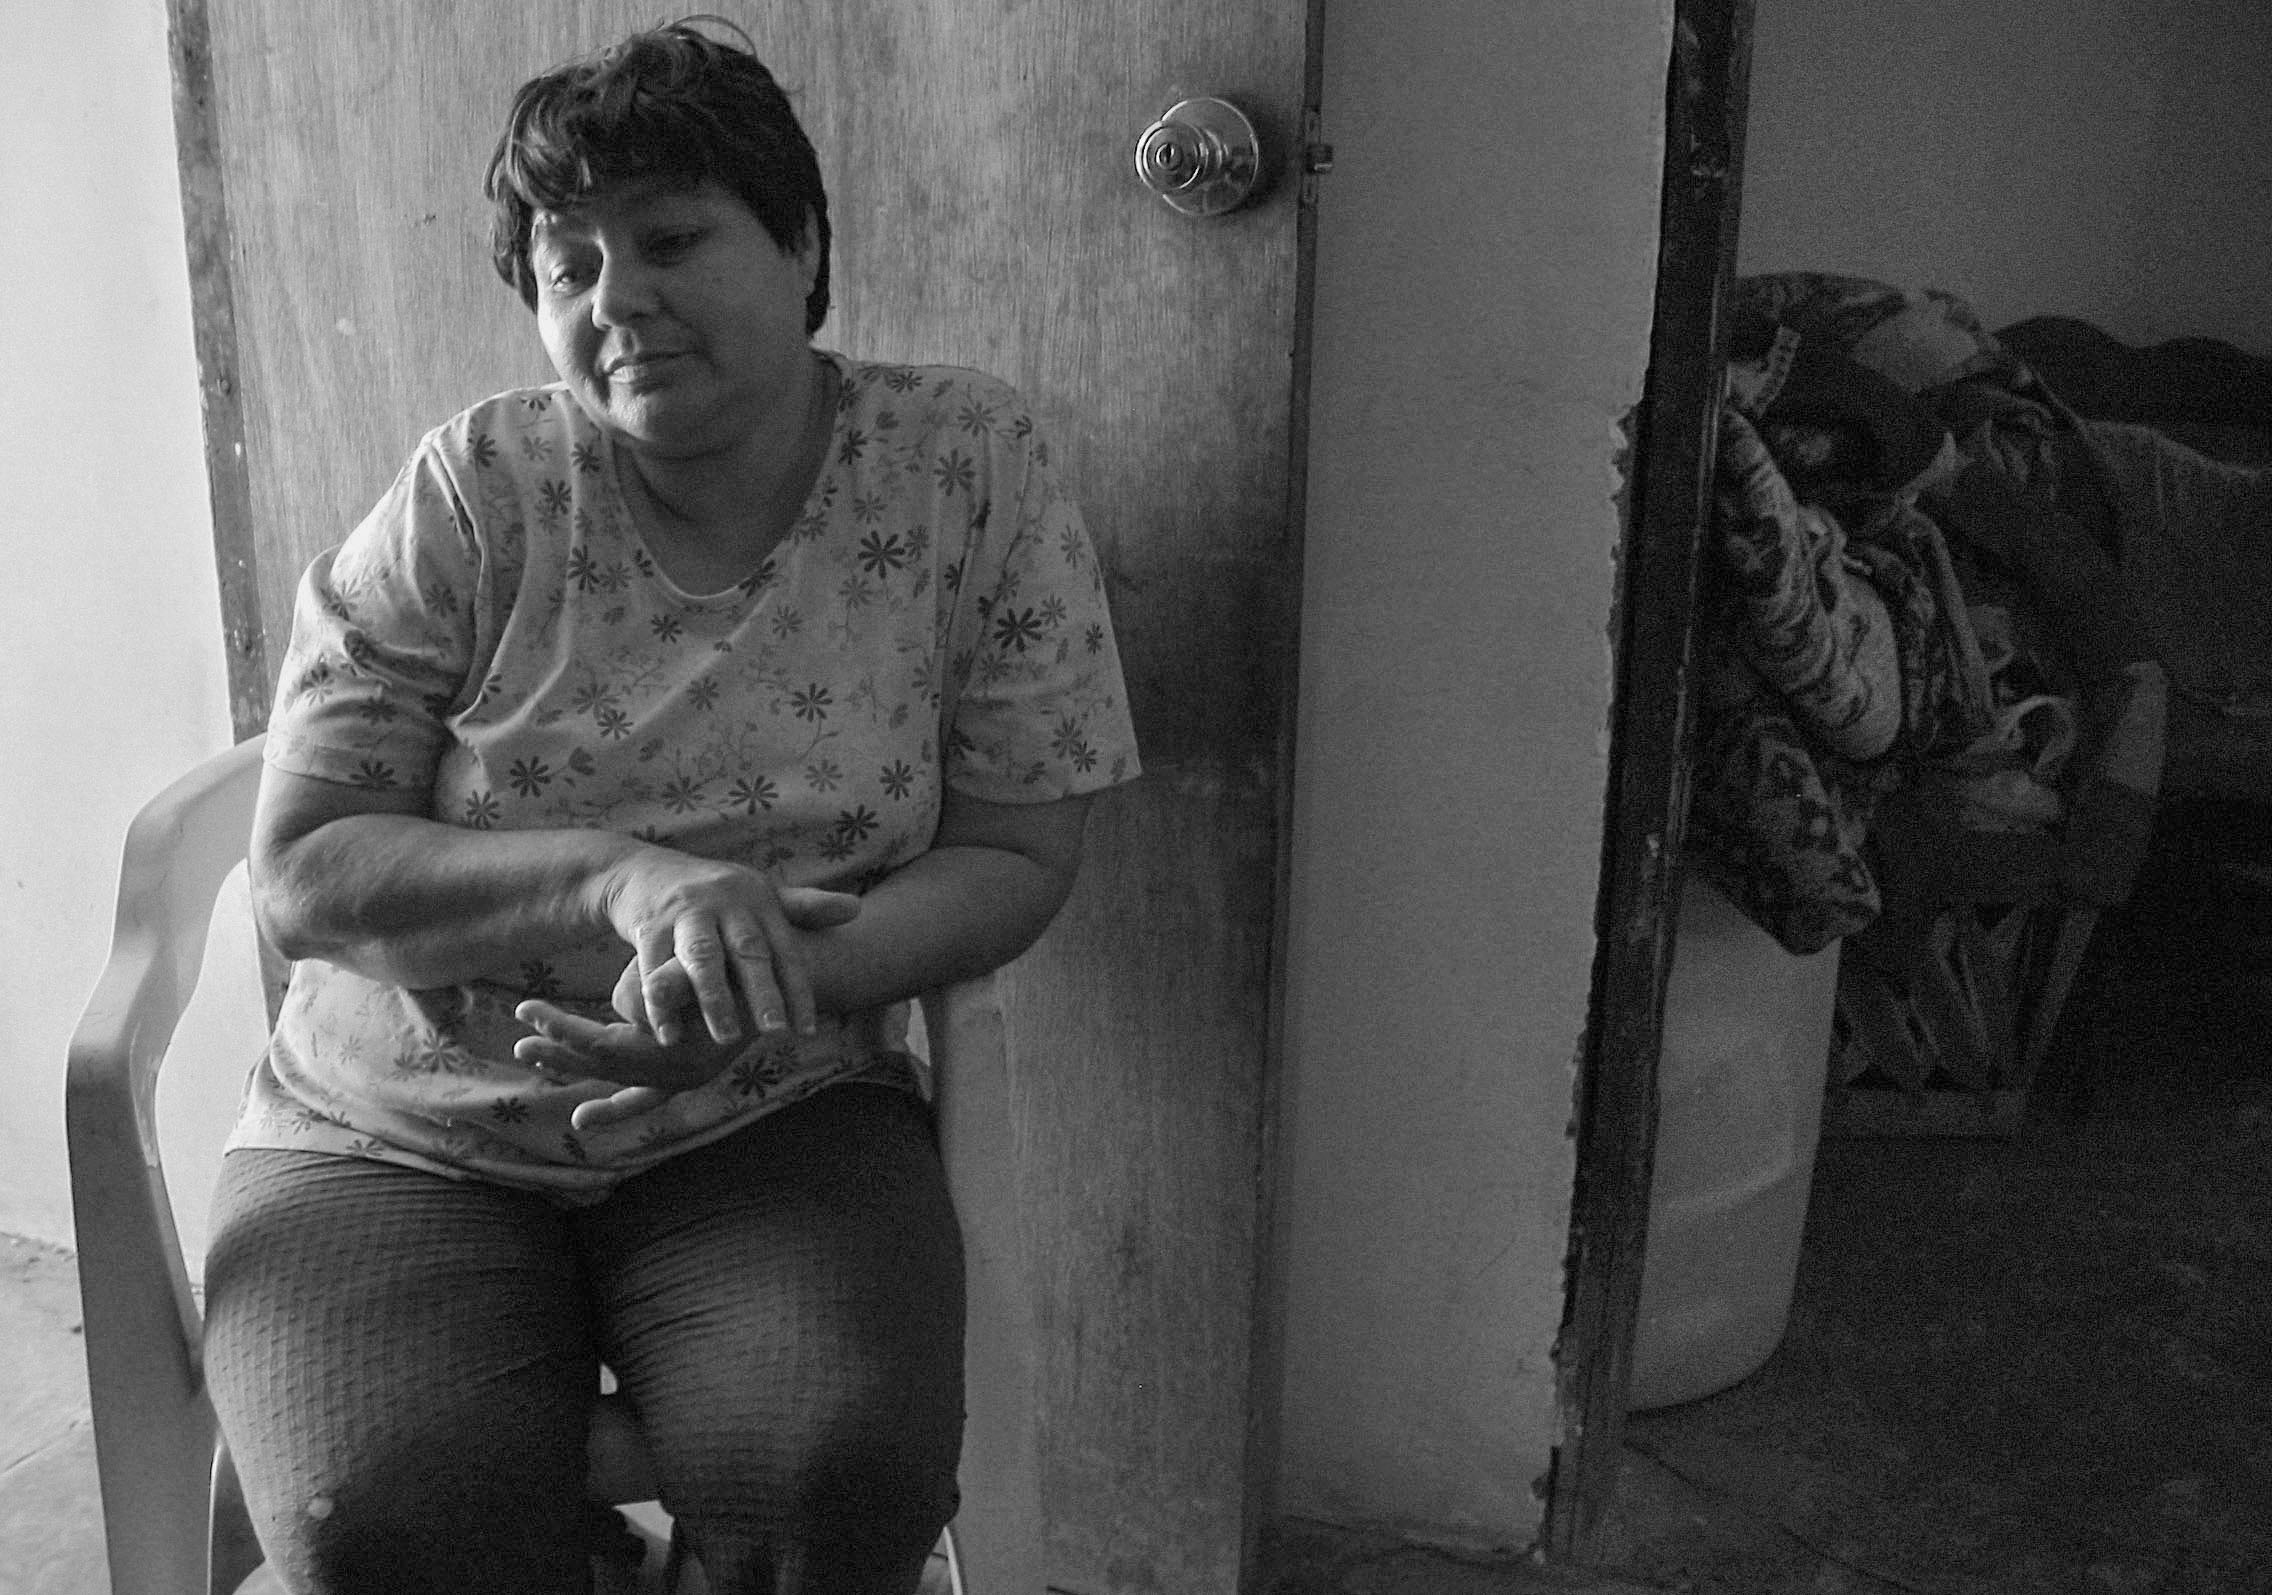 "Armirda Ortiz, longtime resident of El Robledo, a poor neighborhood next to factories.  ""I've had these (rash on her arms and neck) for a few years now. So does my husband. They get worse when the dust kicks up. I'm not sure what it is. I've never had allergies before. I put calamine lotion on the rashes to stop the itching, but it doesn't take them away. I need to use an umbrella when I'm on the street to shield my skin. The sun makes it worse. I haven't been to a doctor, we don't have health insurance, but my husband is working on that."""